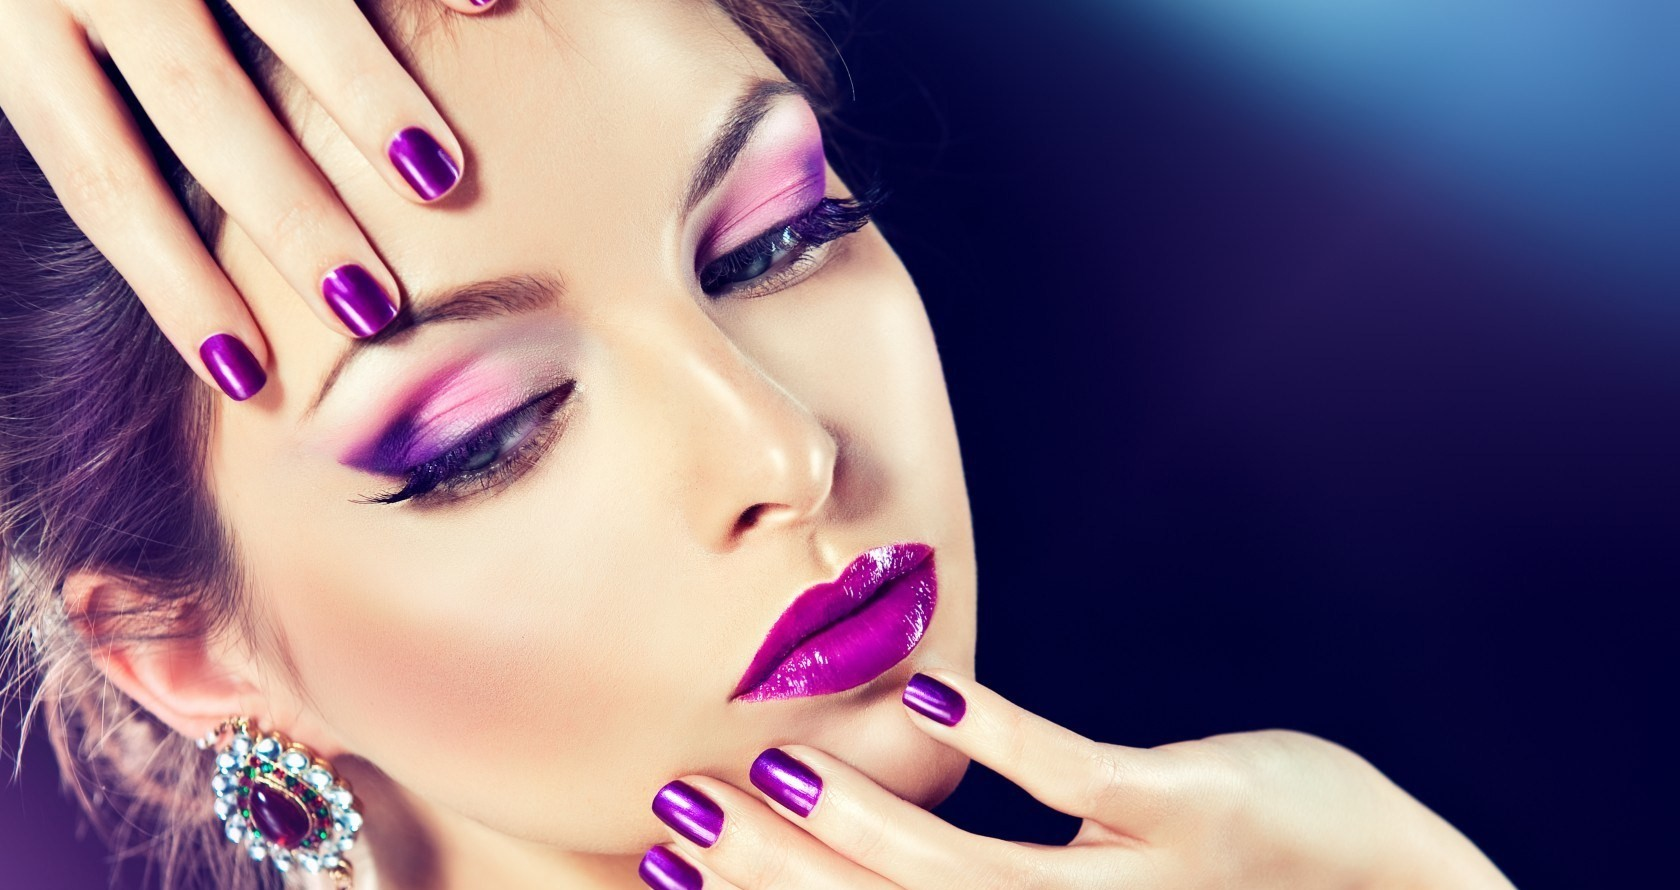 Do you know how to do perfect make-up